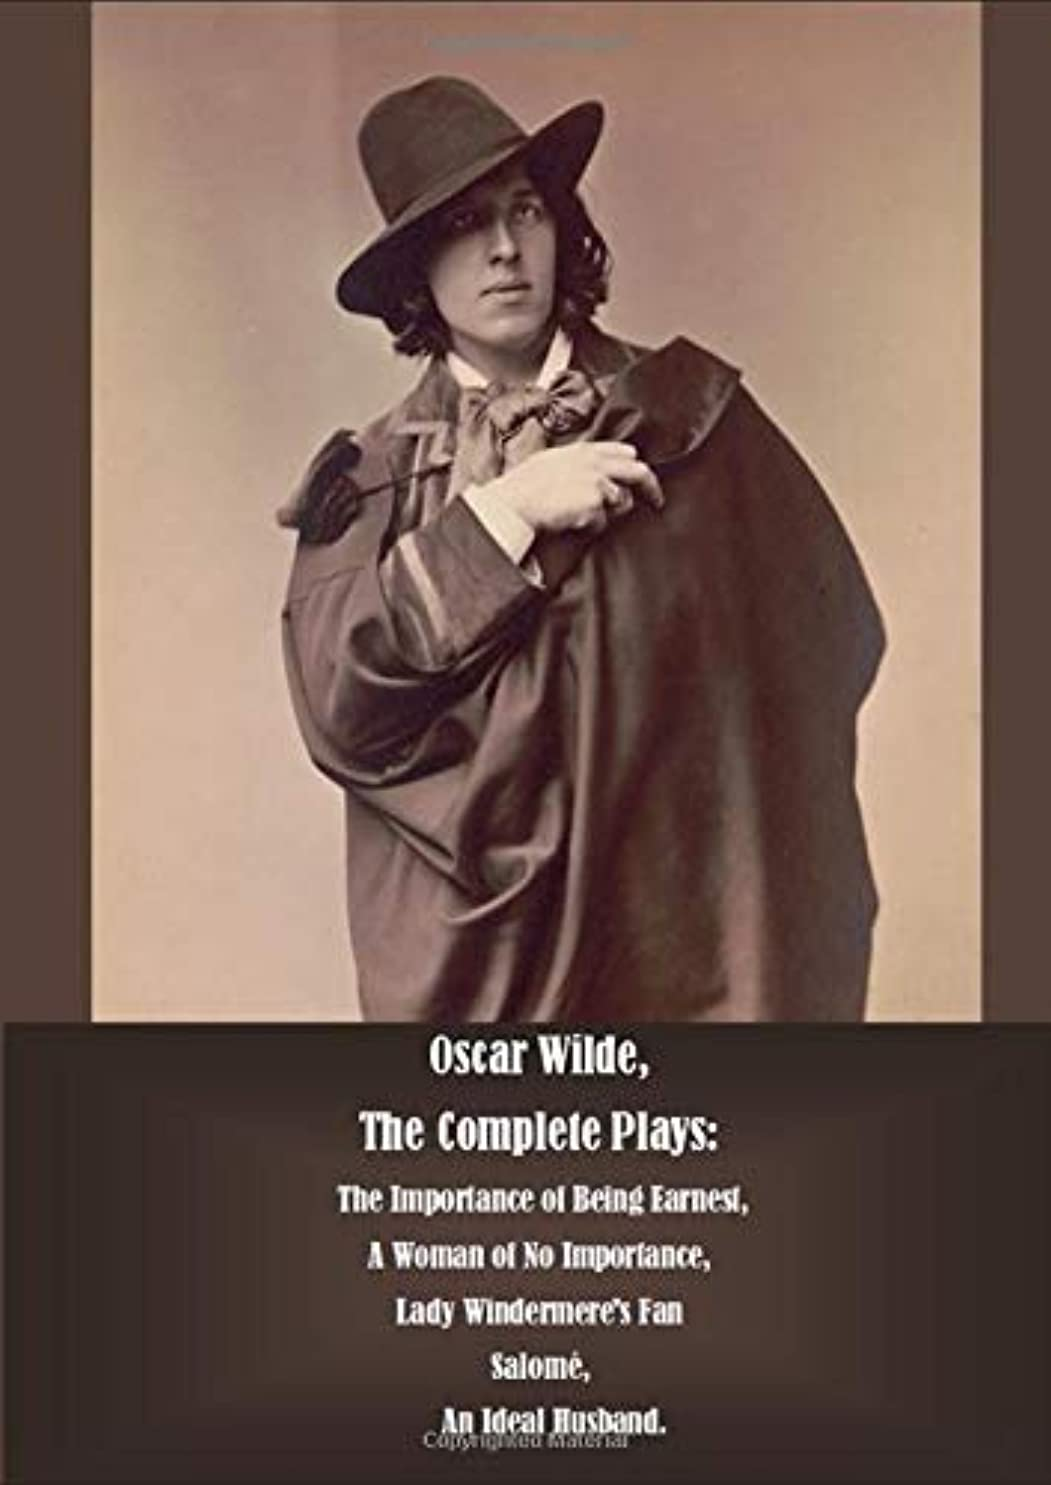 機知に富んだ爪メイドOscar Wilde,  The Complete Plays:  The Importance of Being Earnest,  A Woman of No Importance,  Lady Windermere's Fan  Salomé,  An Ideal Husband.